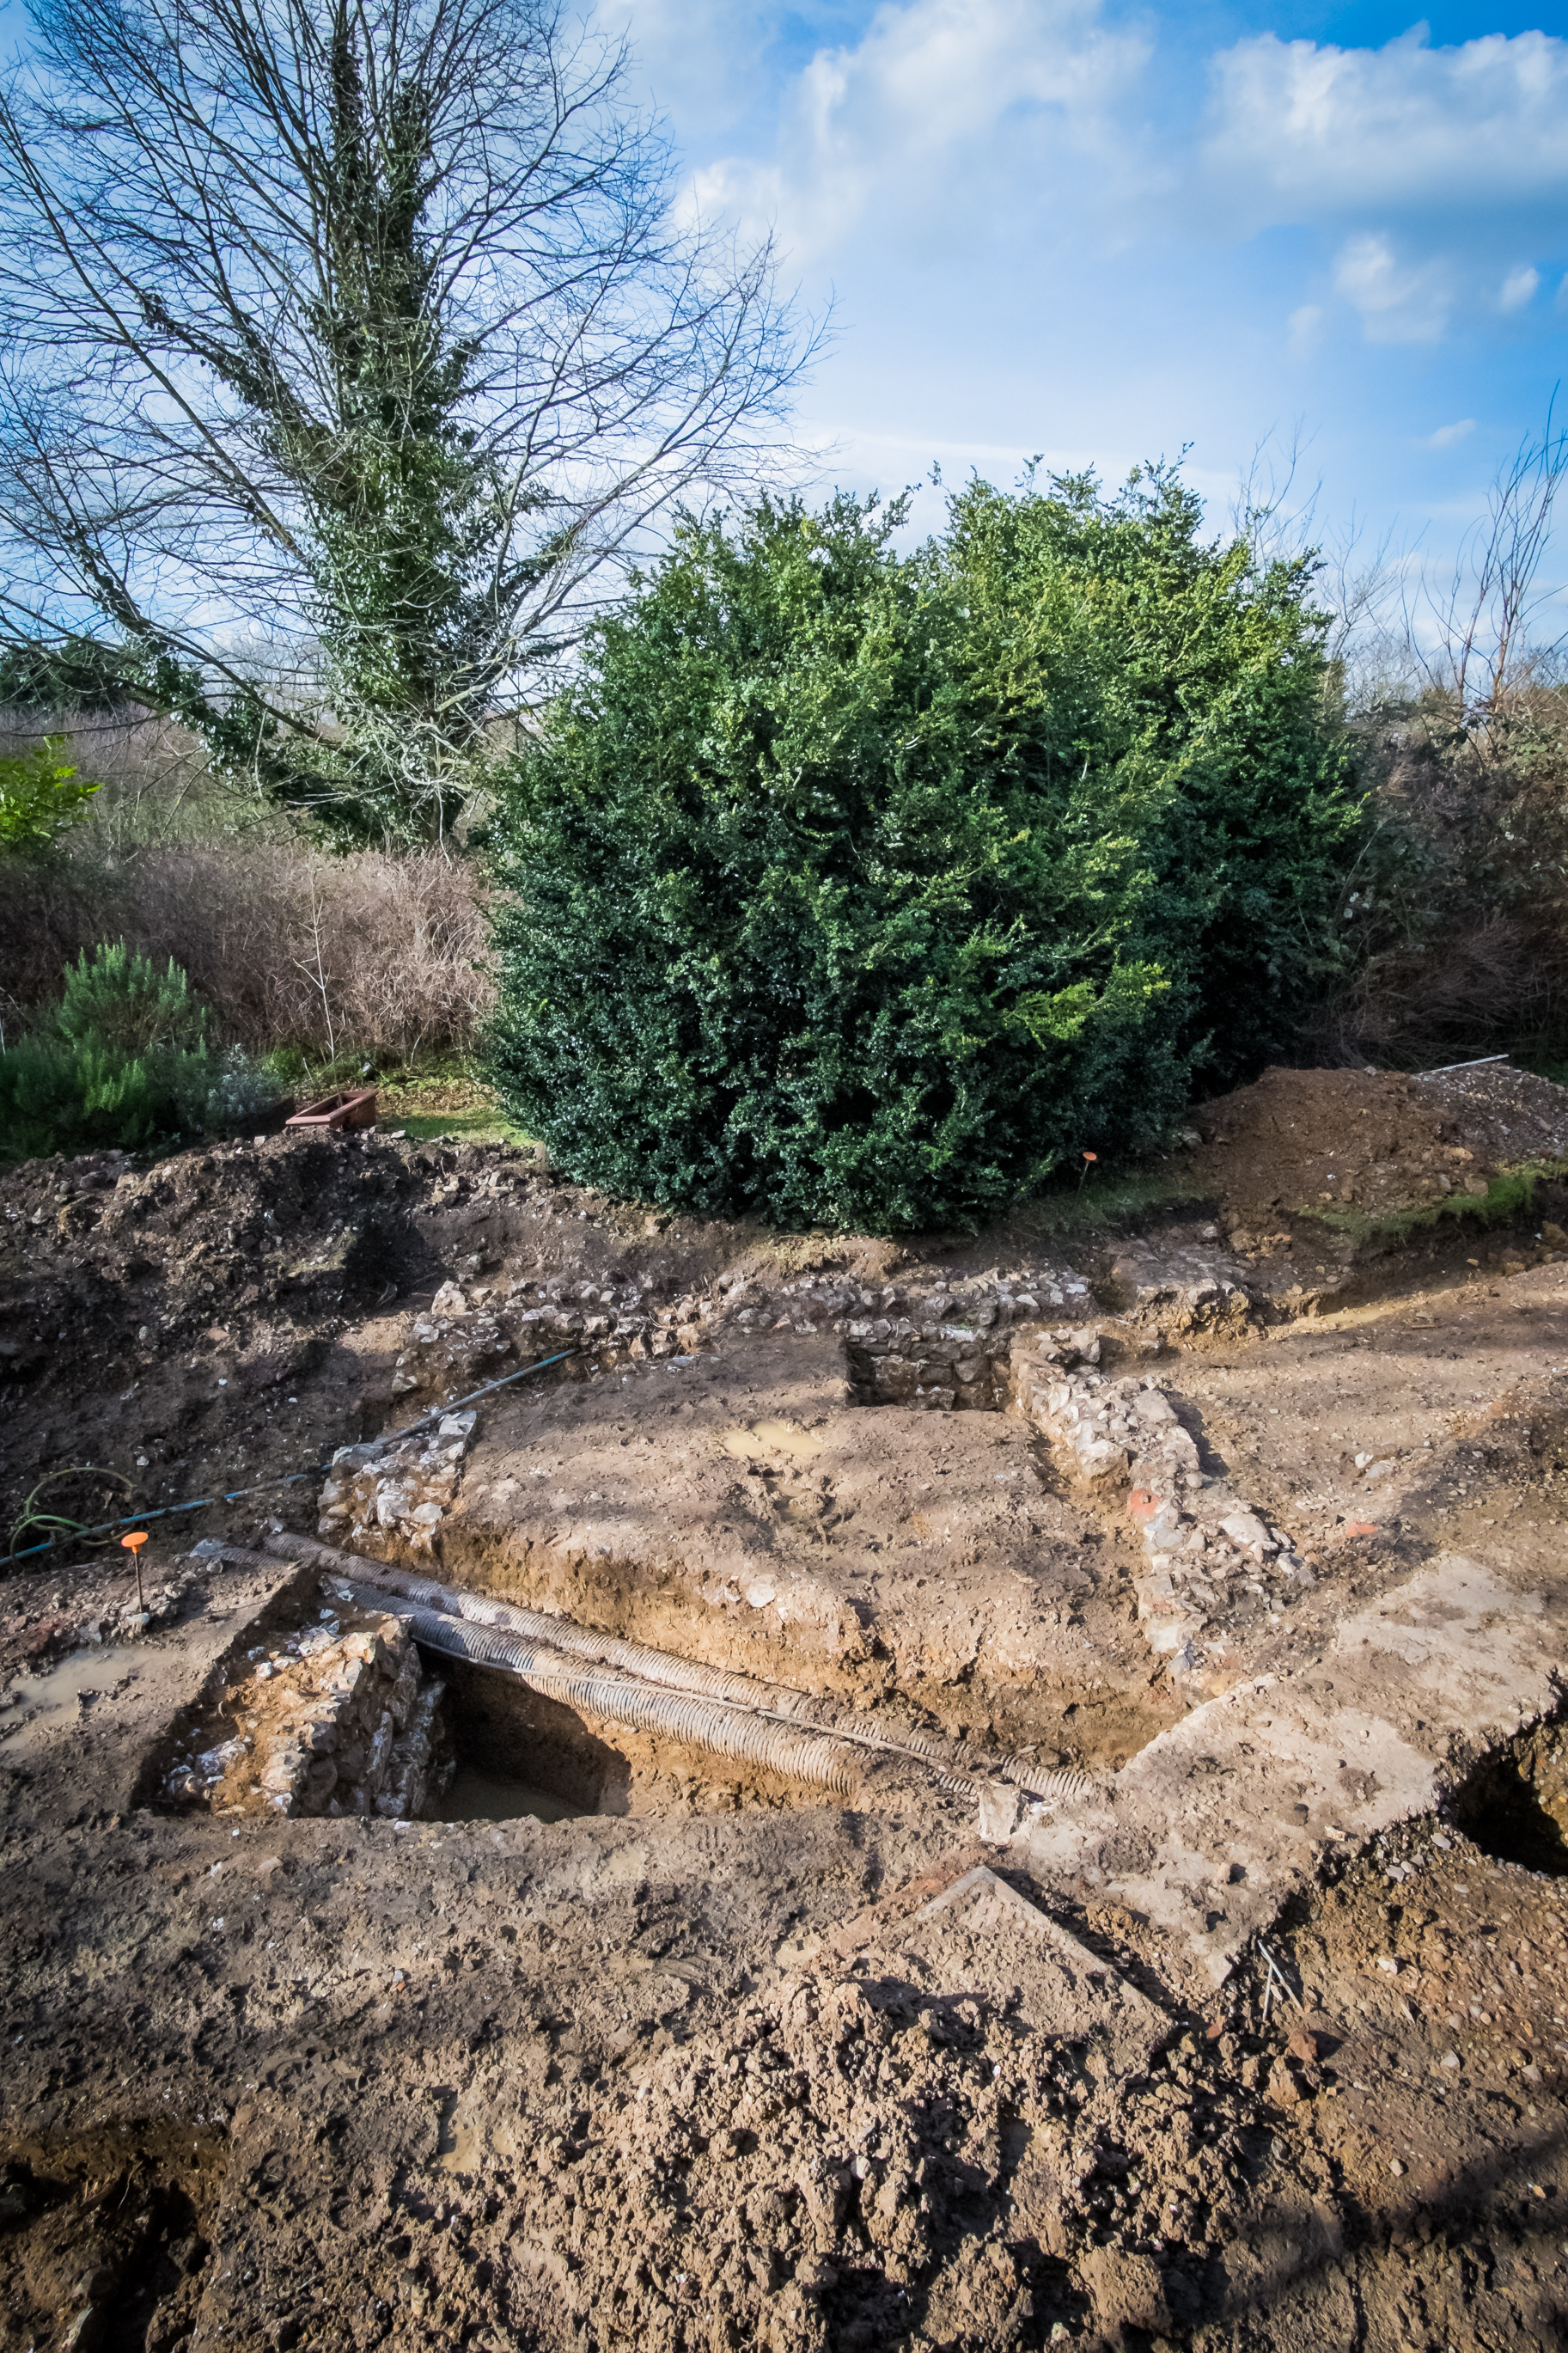 Finding hidden archaeology during HLF funded renovation of historic building